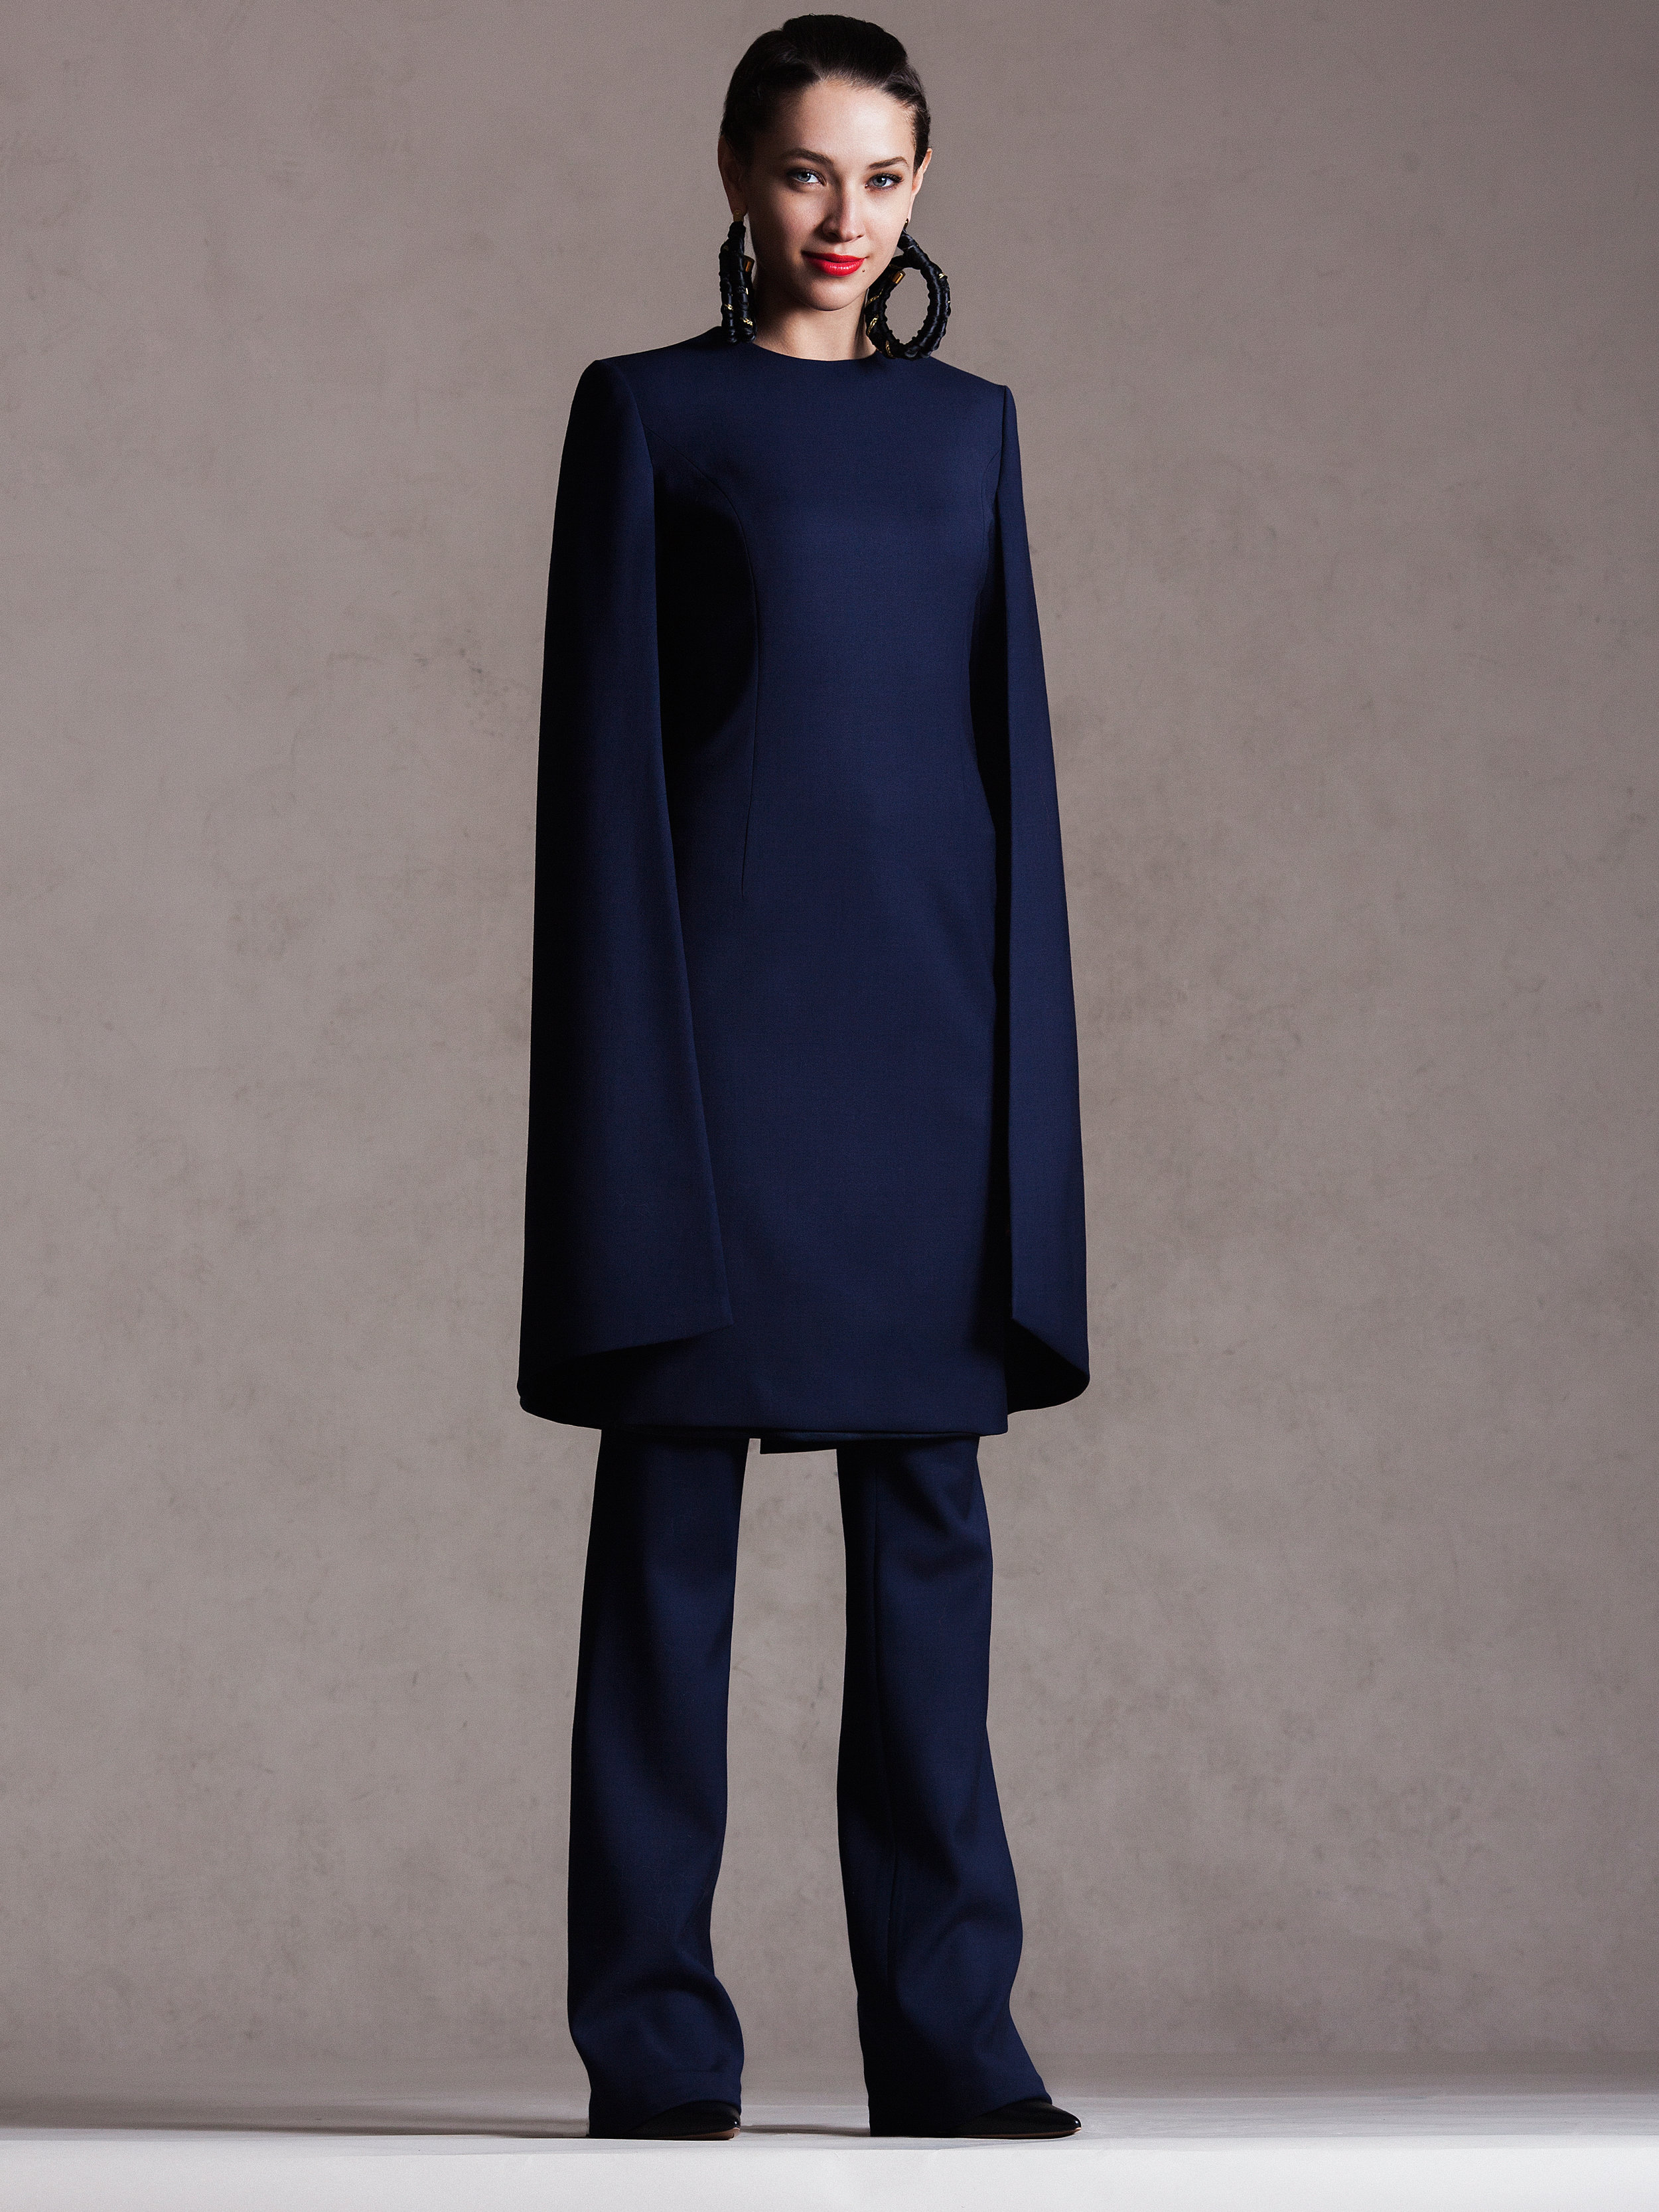 Lucian-Matis-Lookbook-20150204-008c.jpg